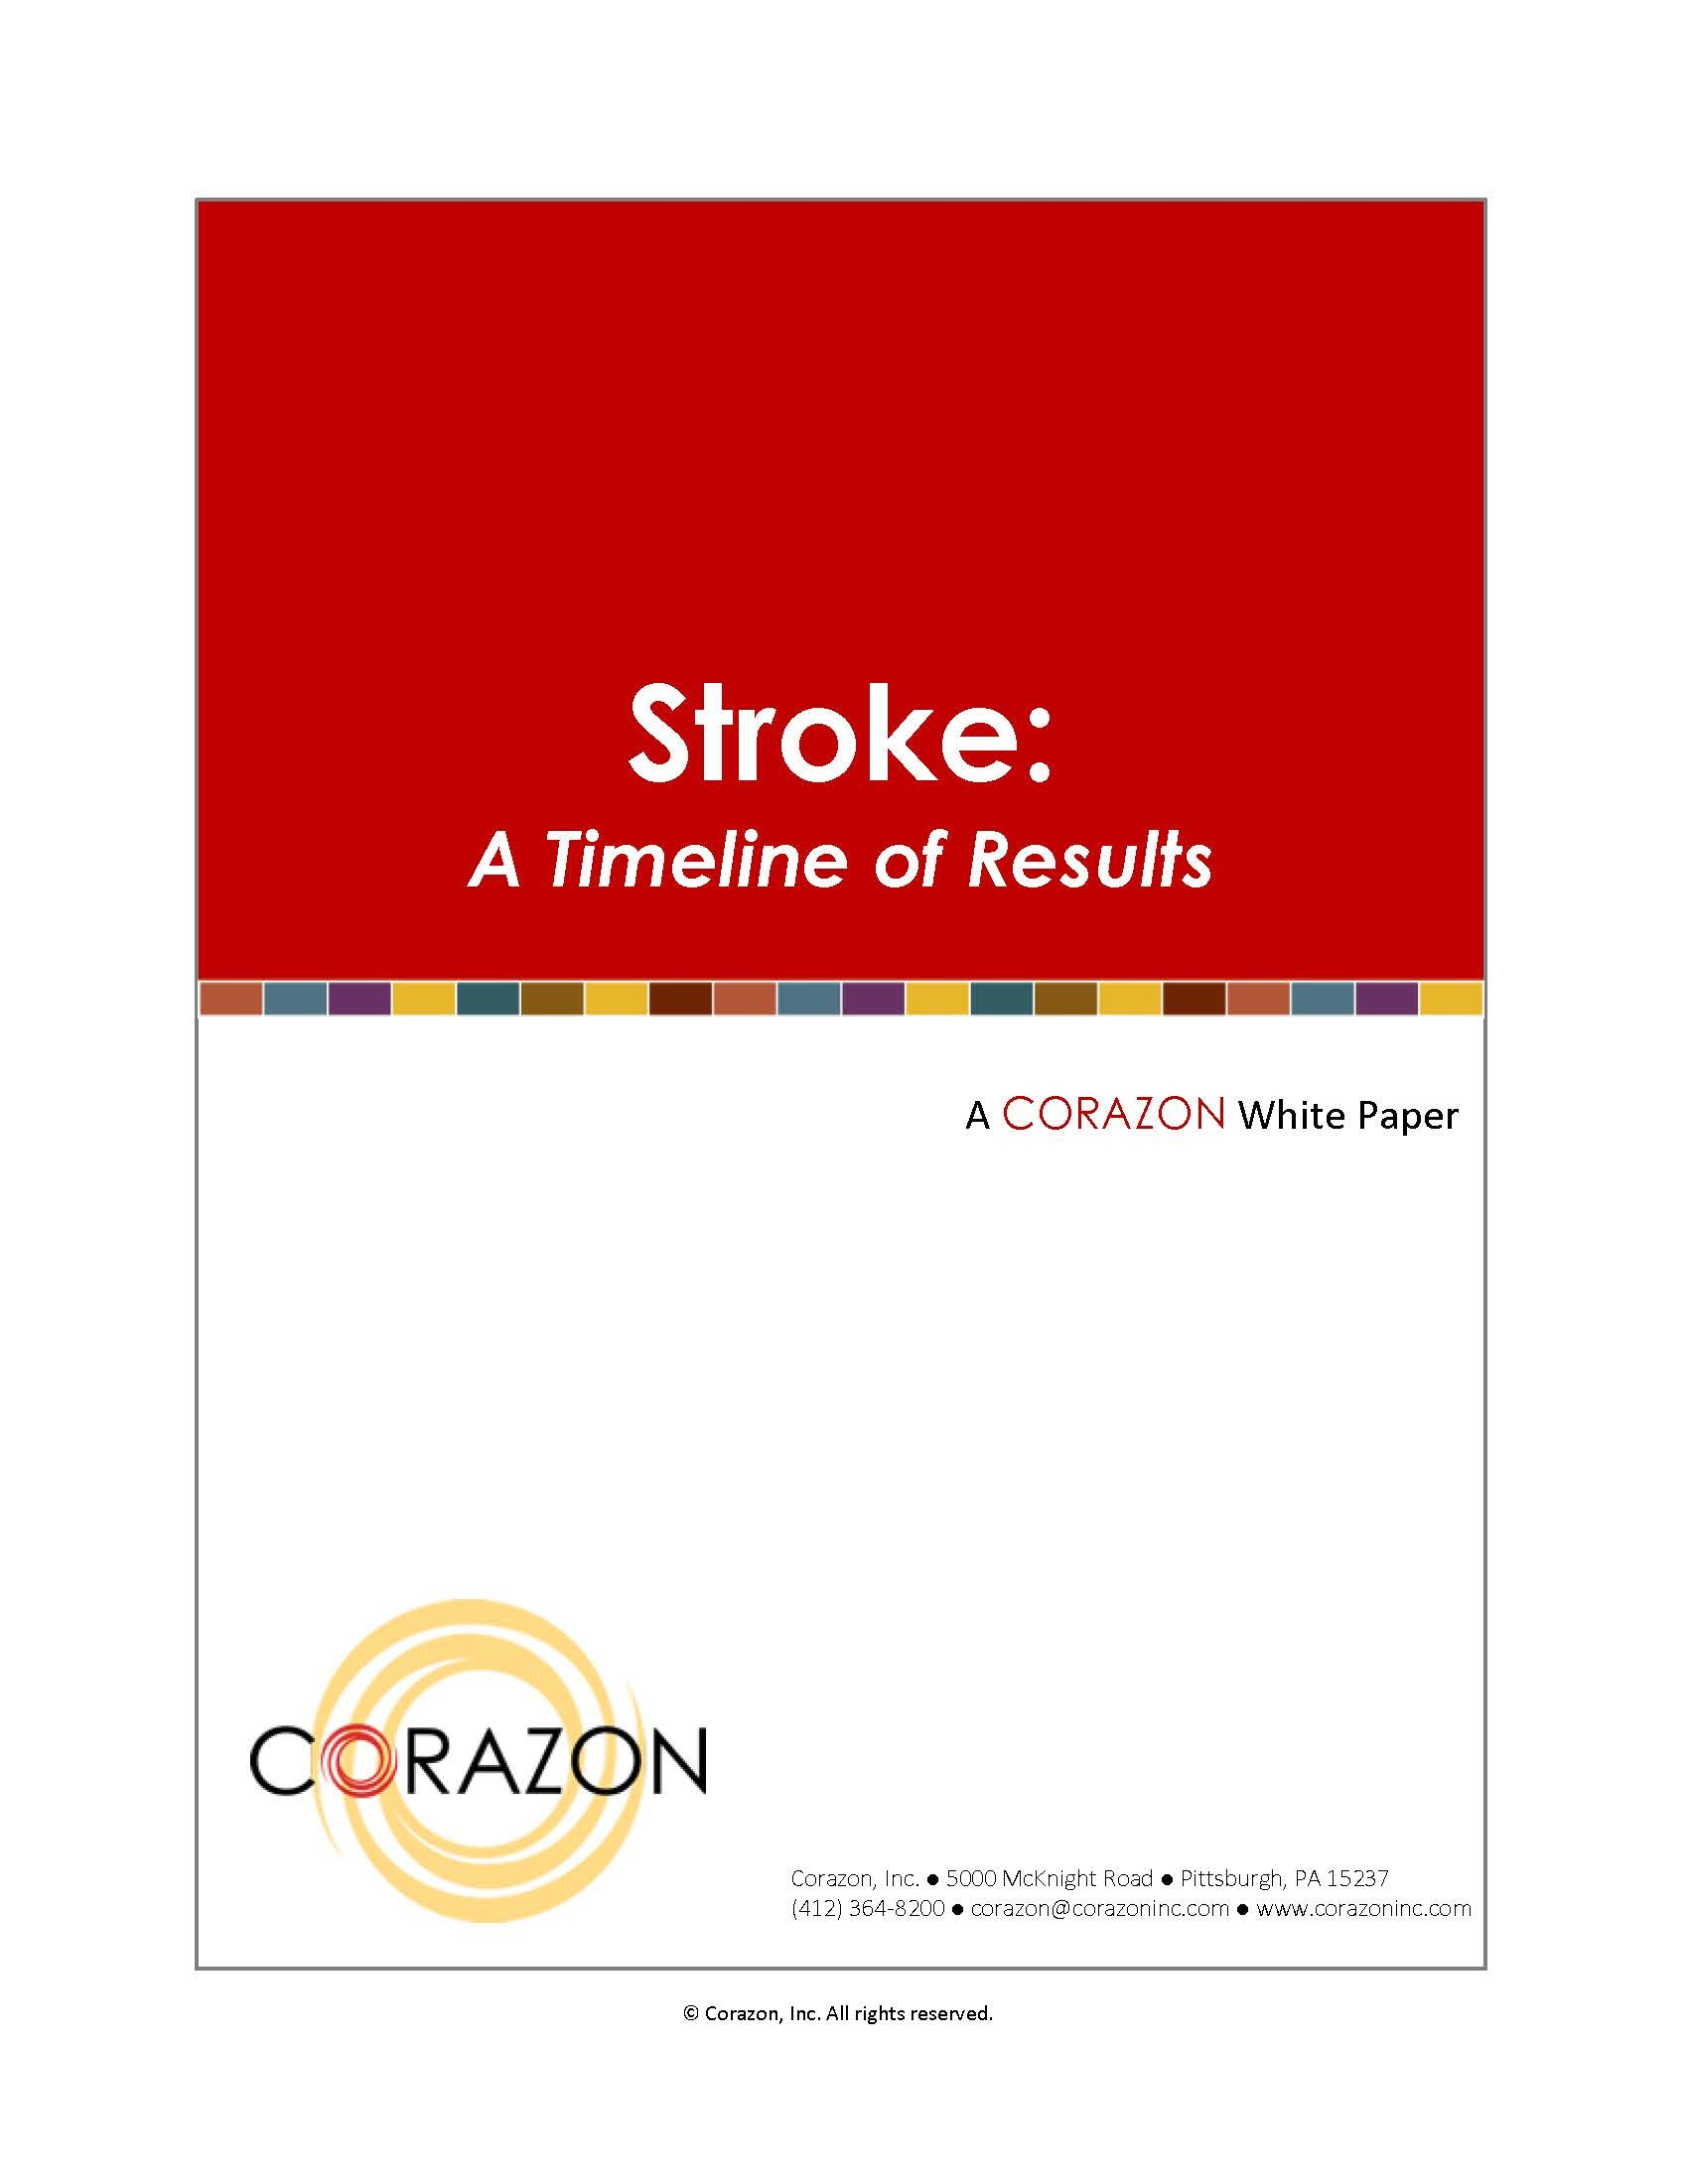 Stroke: A Timeline of Results 00014